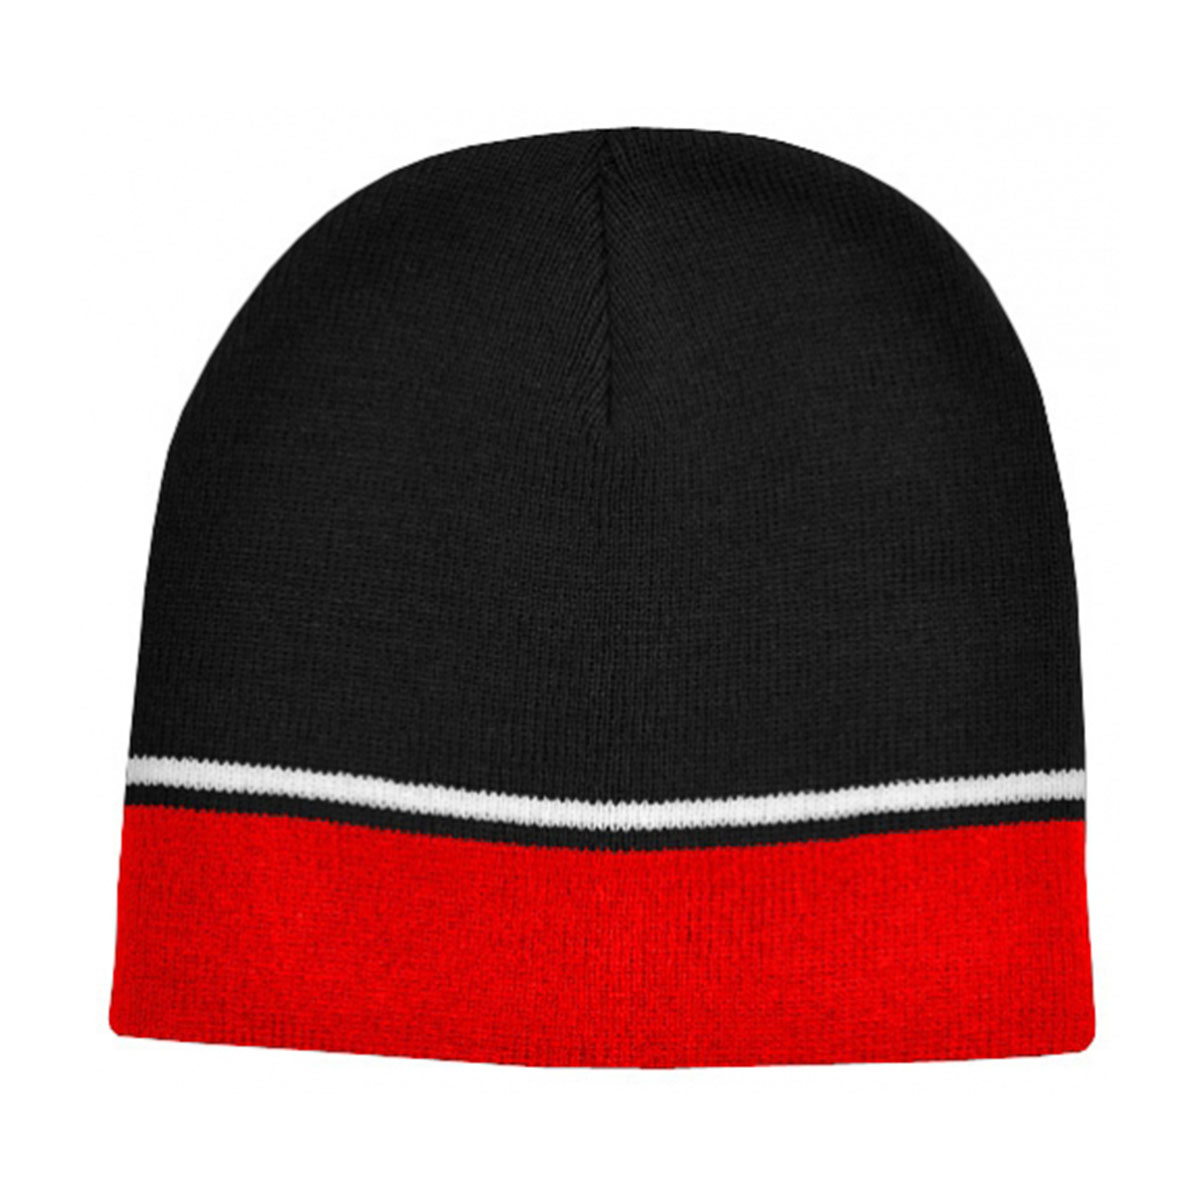 Two-Tone Beanie-Black / White / Red